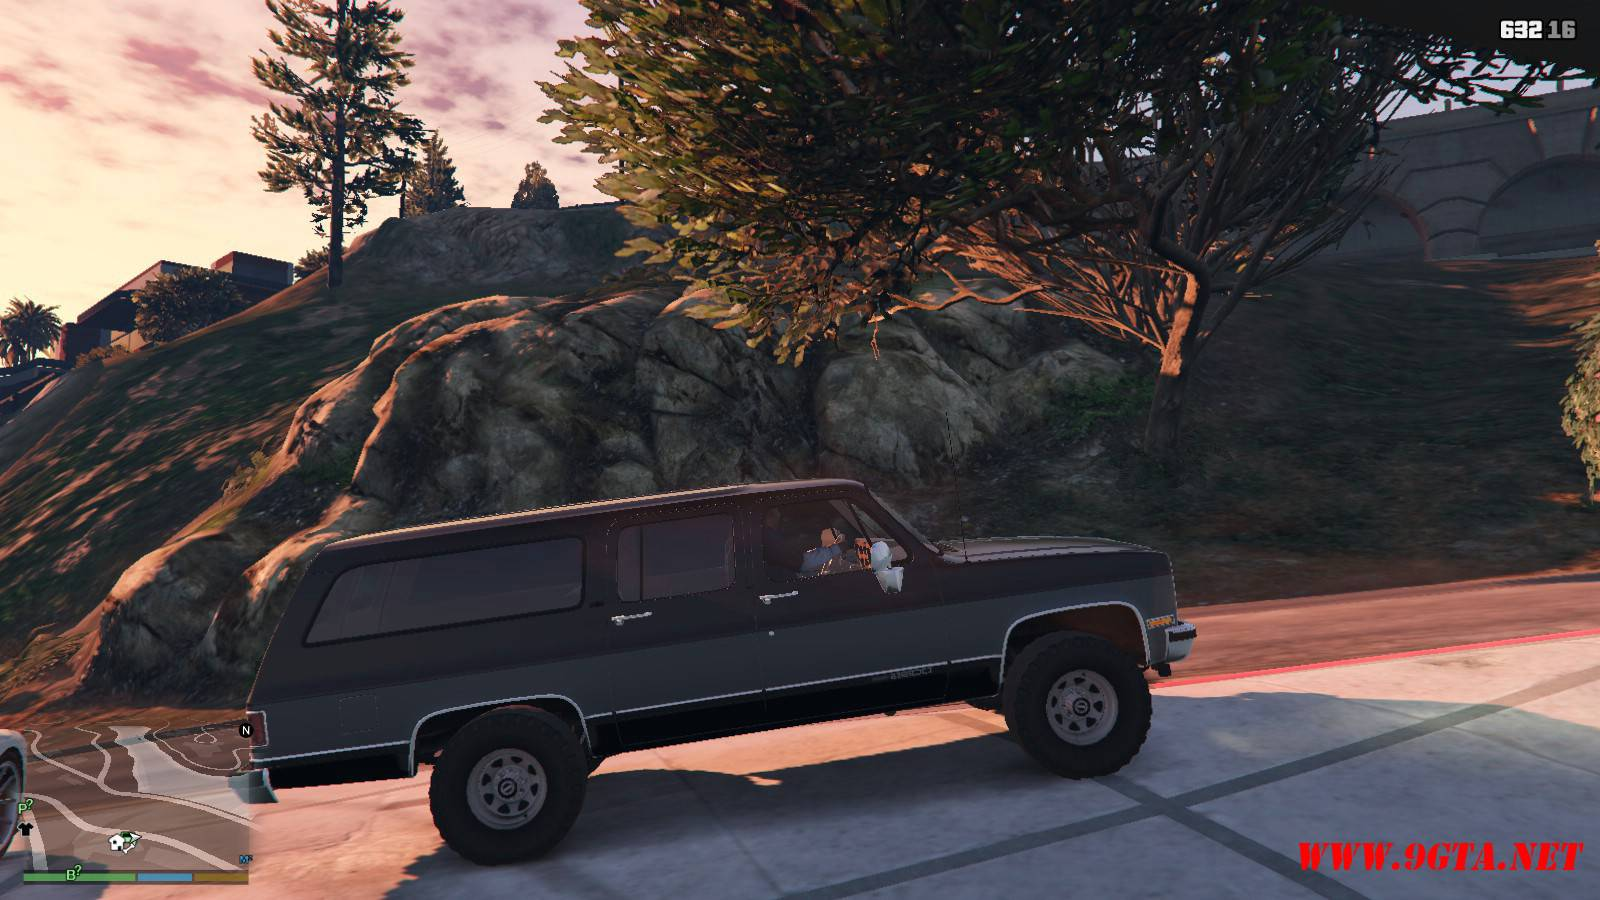 1989 GMC Suburban Mod For GTA 5 (4)